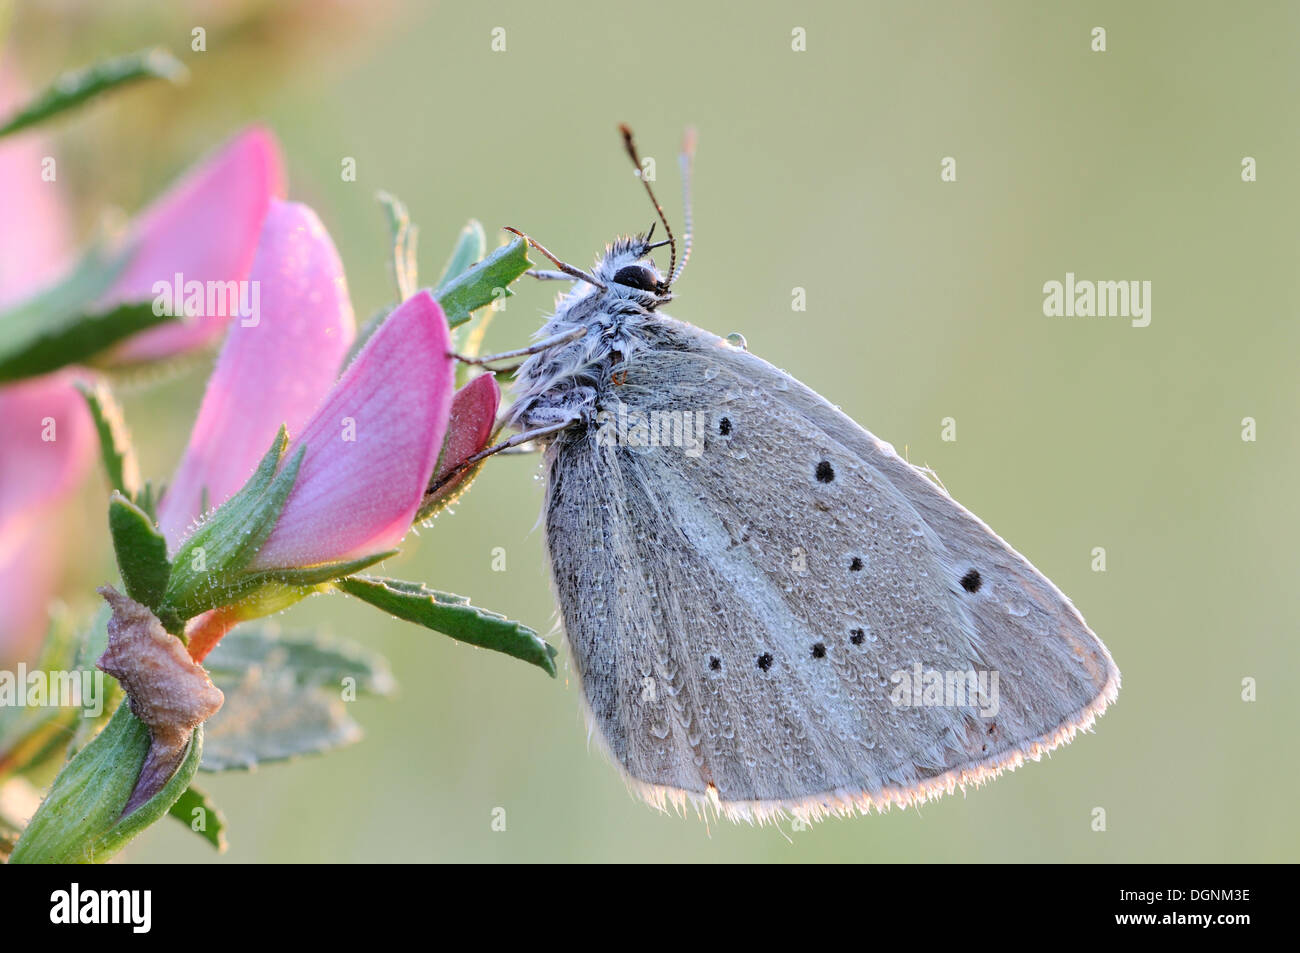 Damon Blue Butterfly (Polyommatus damon), Red List of Germany, category 1, threatened with extinction, Rana, Czech Republic - Stock Image